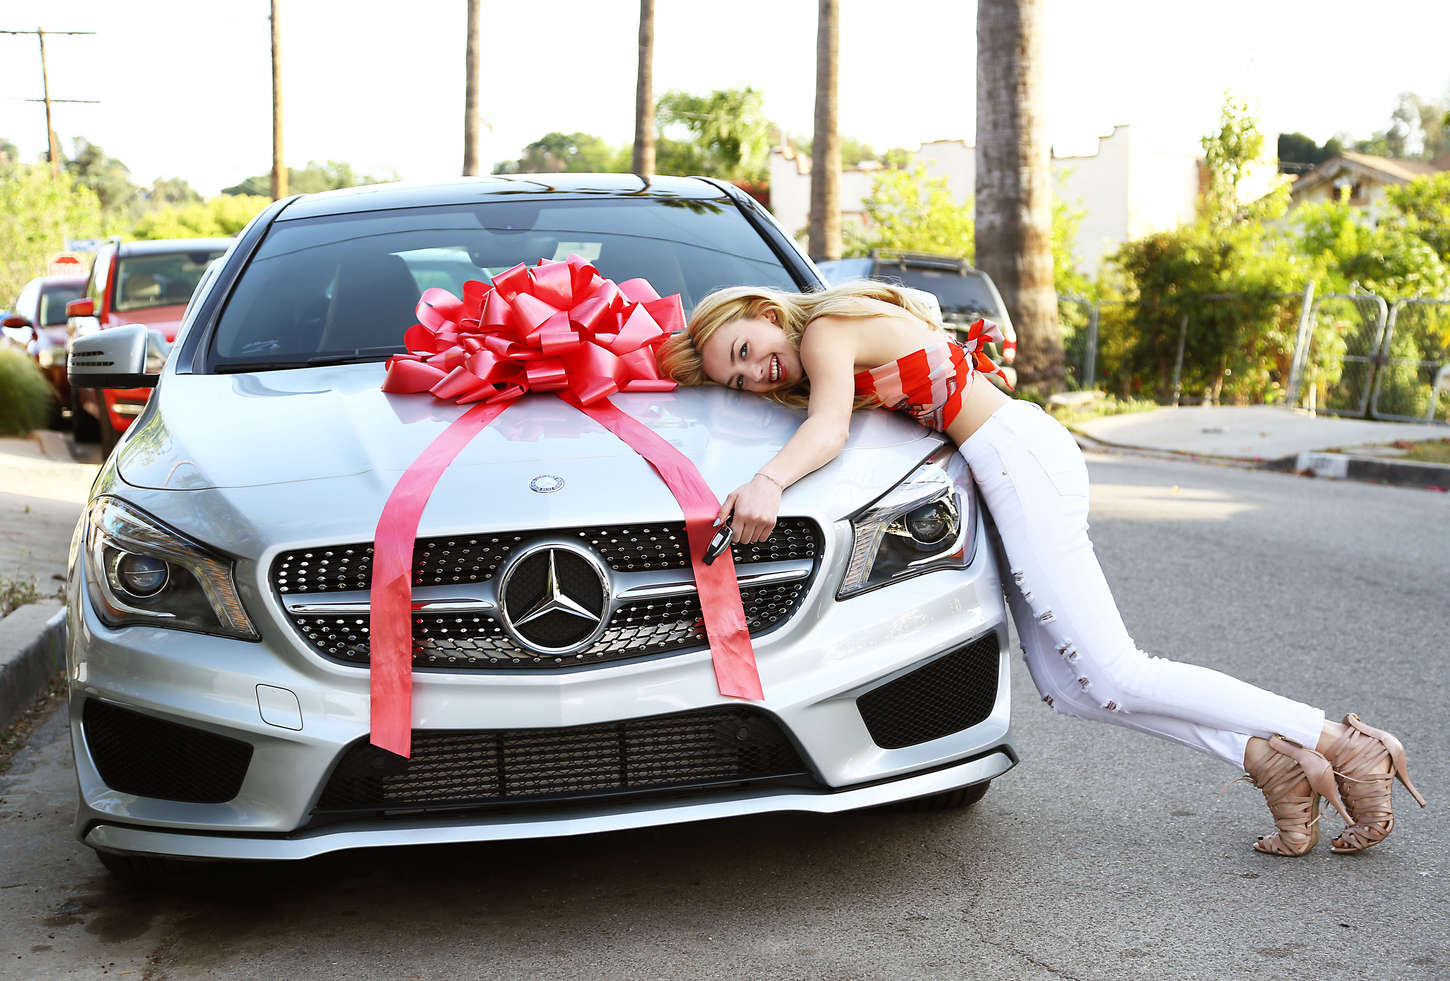 Peyton Roi List 2015 : Peyton Roi List With her 17th Birthday Present -22